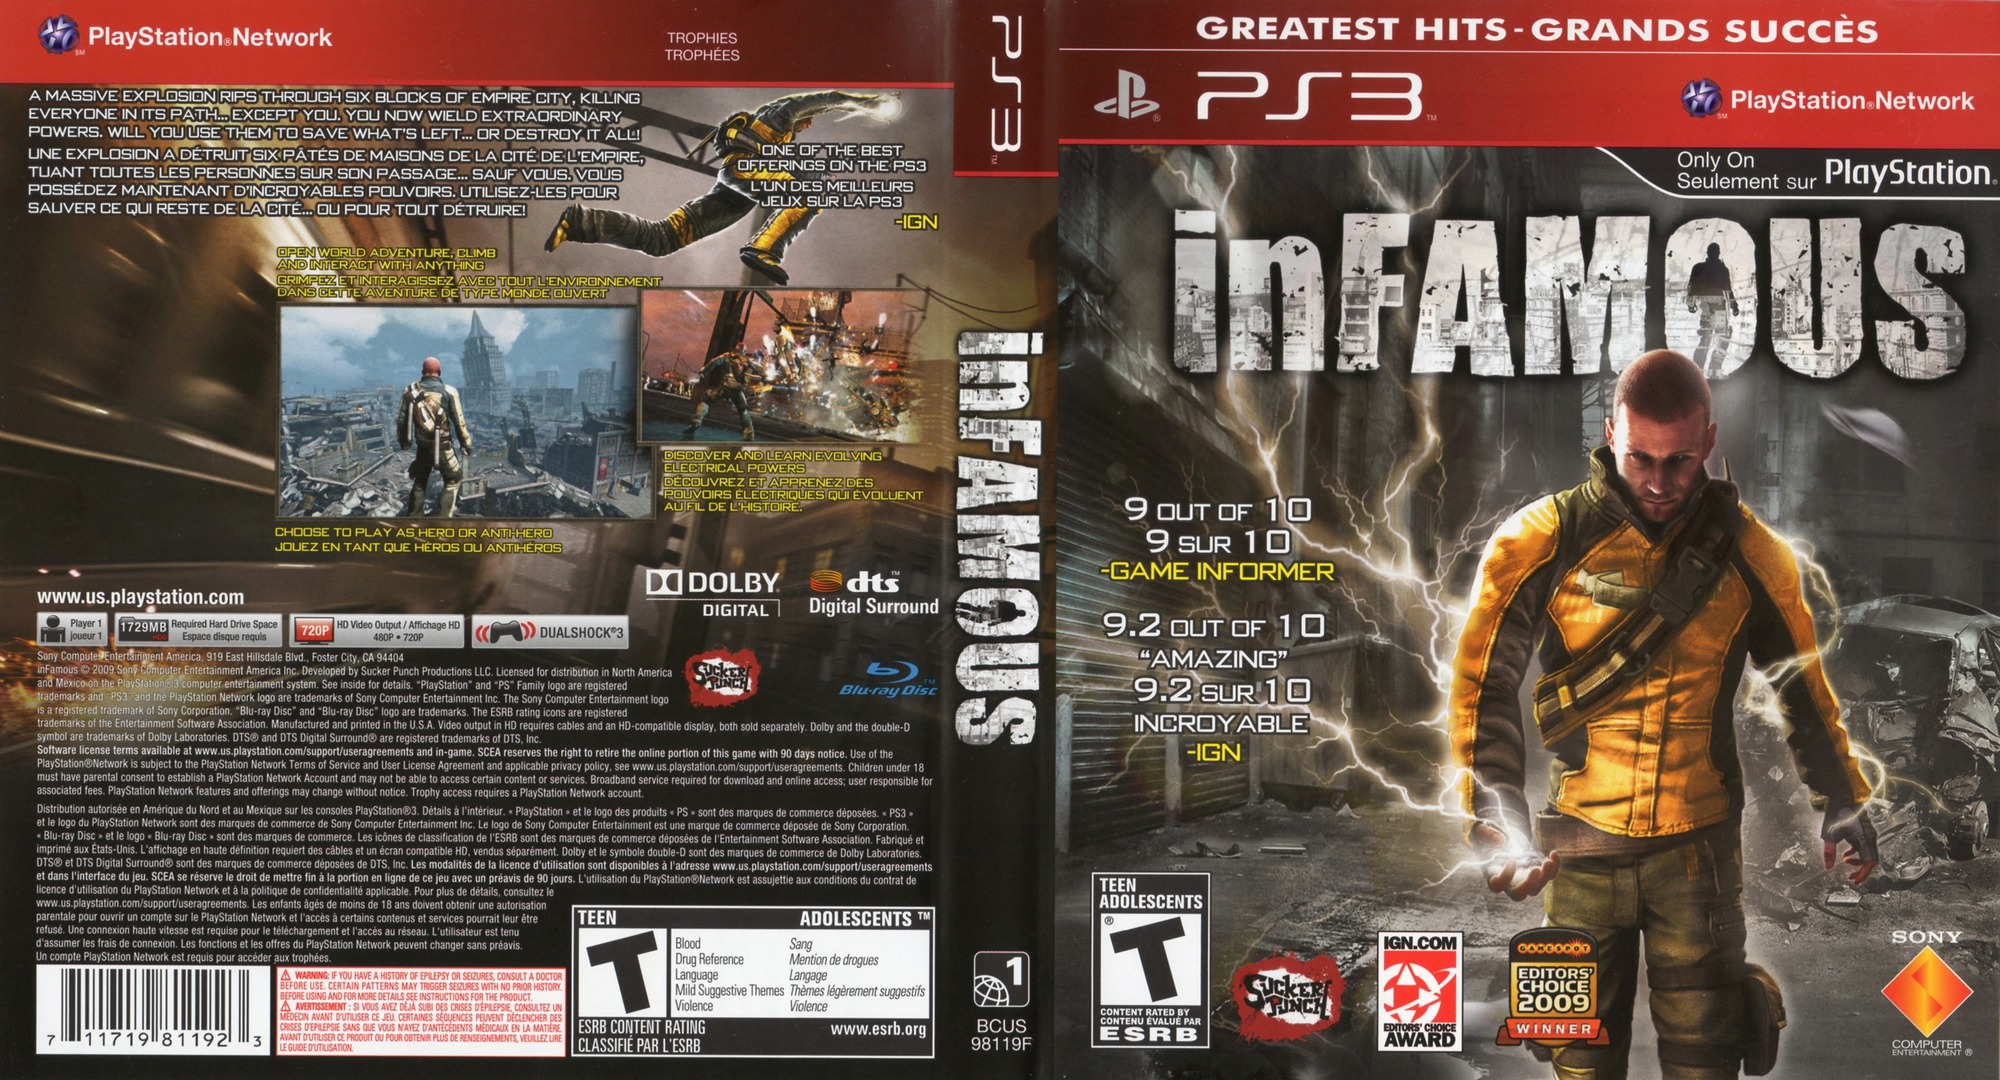 inFamous PS3 coverfullHQB (BCUS98154)